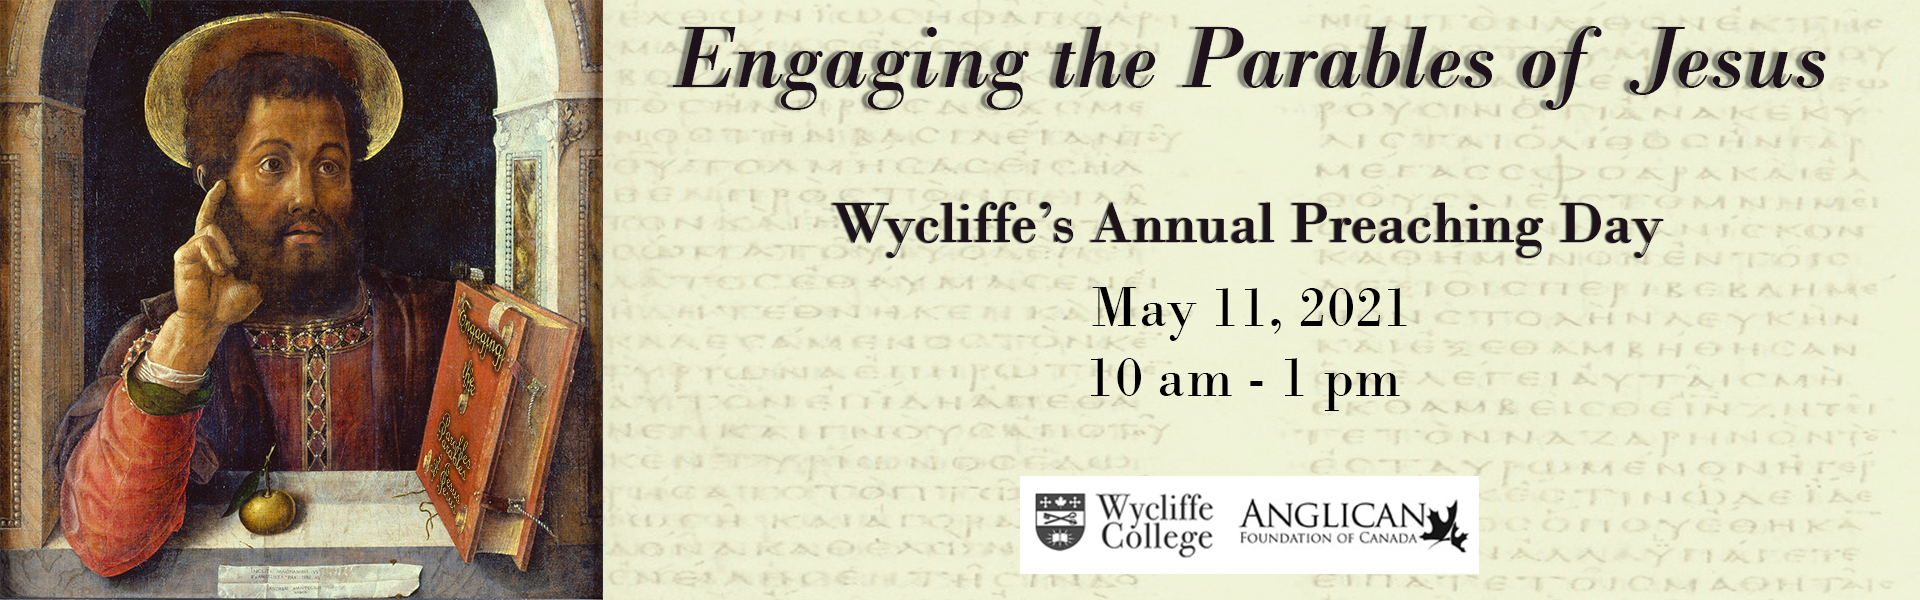 Engaging the Parables of Jesus Wycliffe's annual preaching day May 11, 2021 10 AM to 1 PM